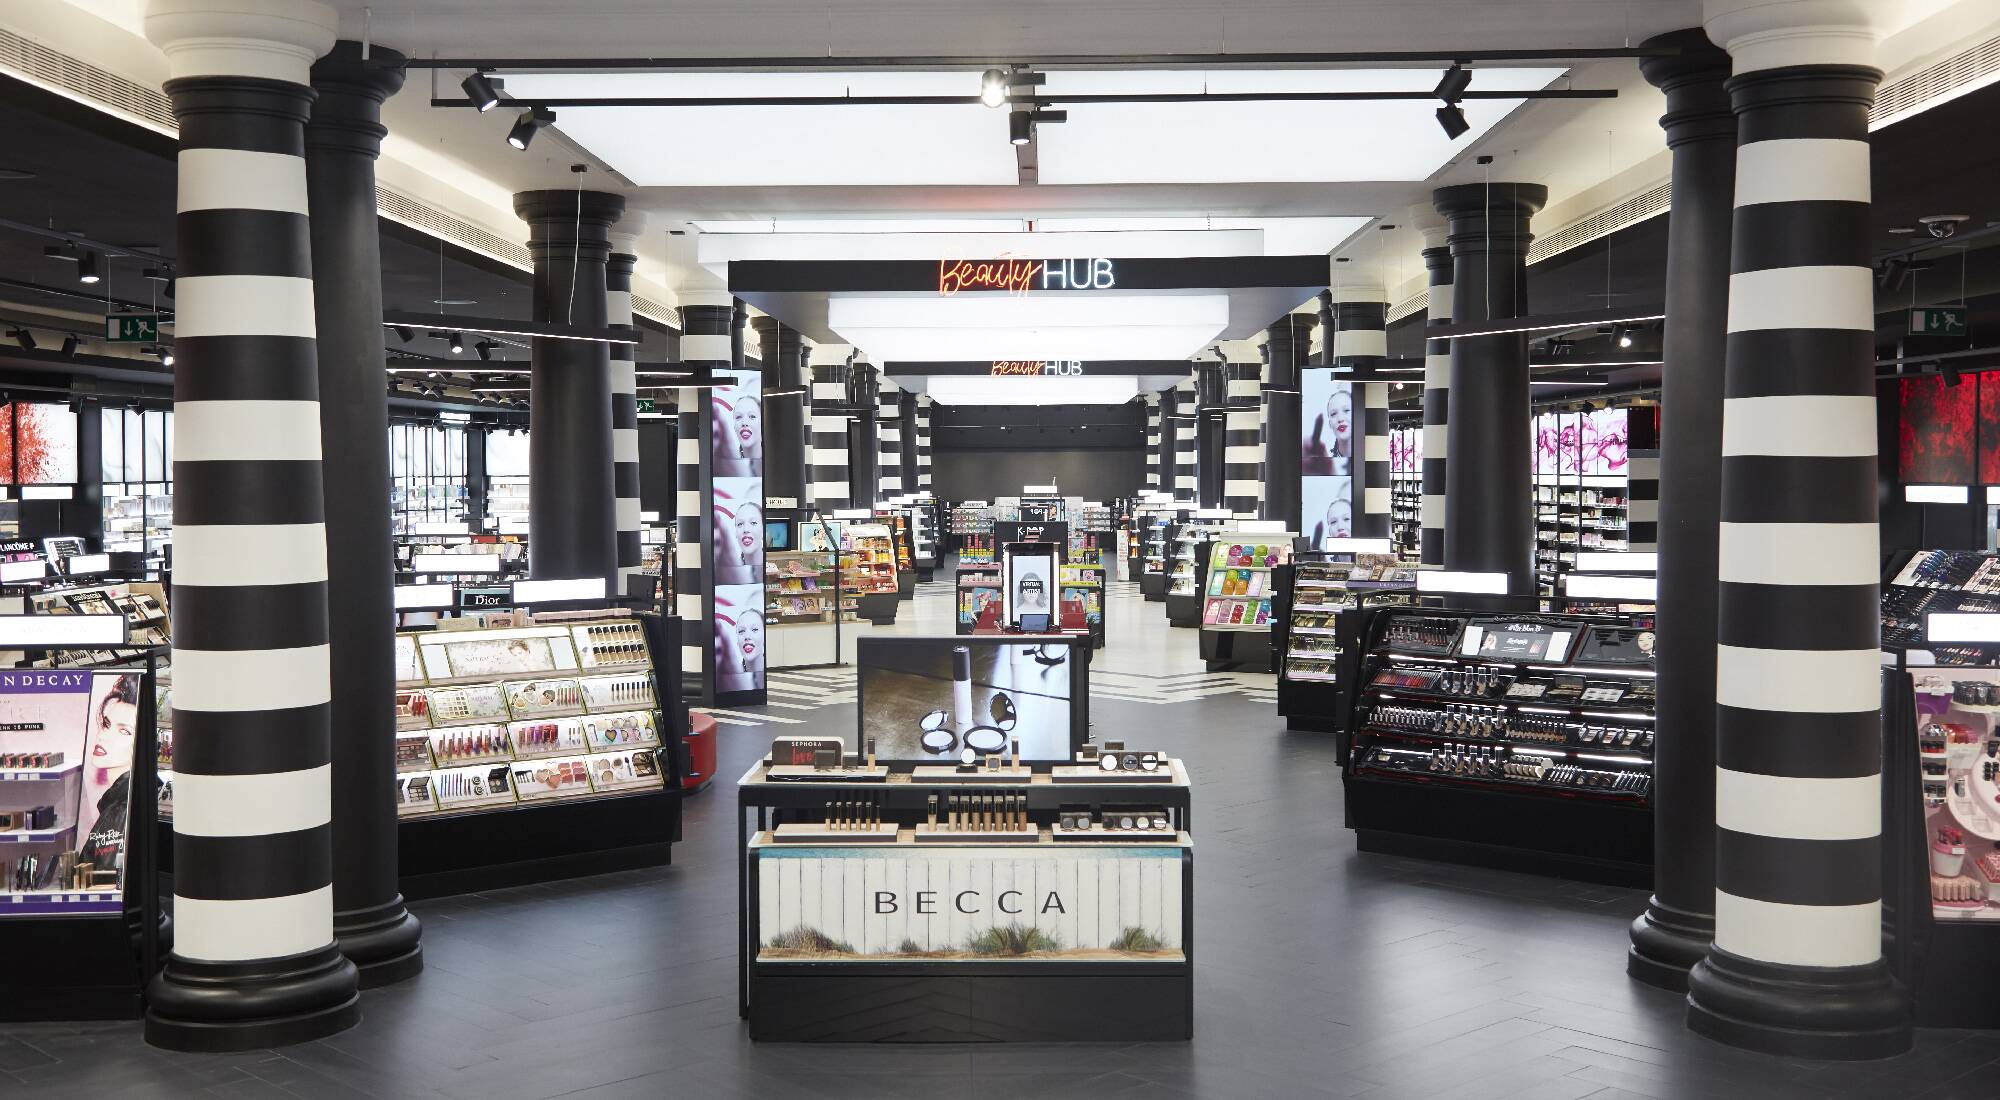 Discover the latest in beauty at Sephora. Explore our unrivaled selection of makeup, skin care, fragrance and more from classic and emerging brands.